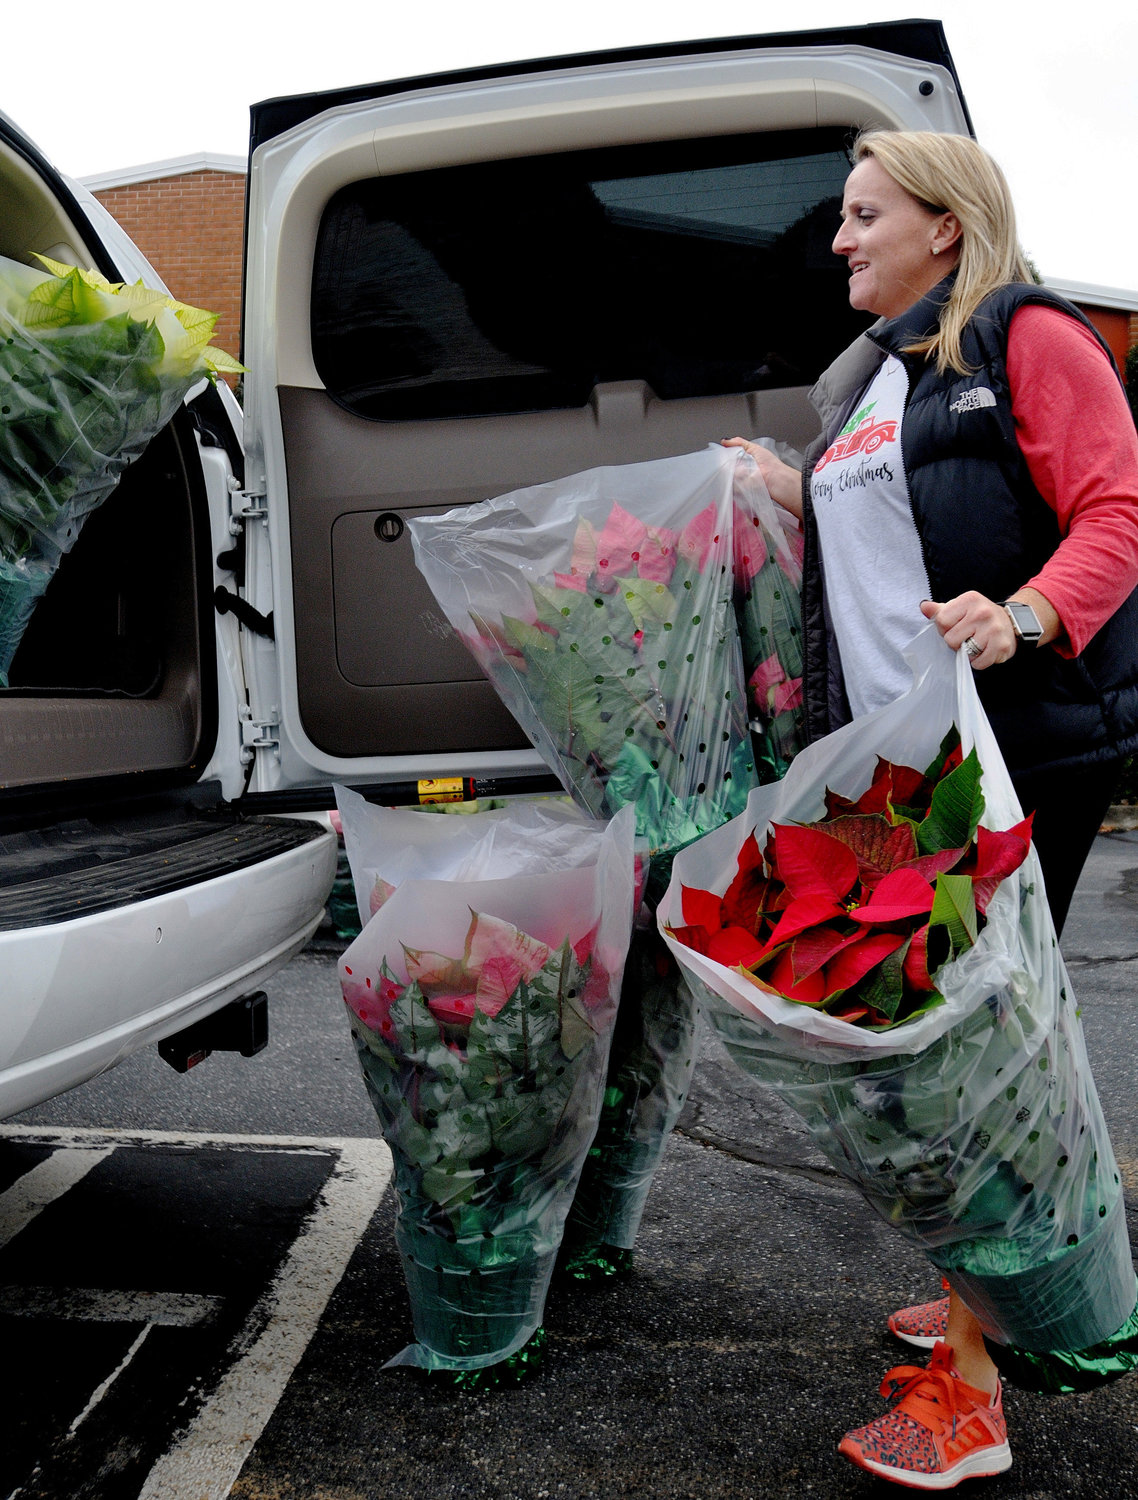 Cartersville Service League member Nicole Burns loads poinsettias into a car for delivery during last year's CSL's annual Poinsettia Sale. The event sold 2,617 plants, with the proceeds supporting various charities in Bartow County.